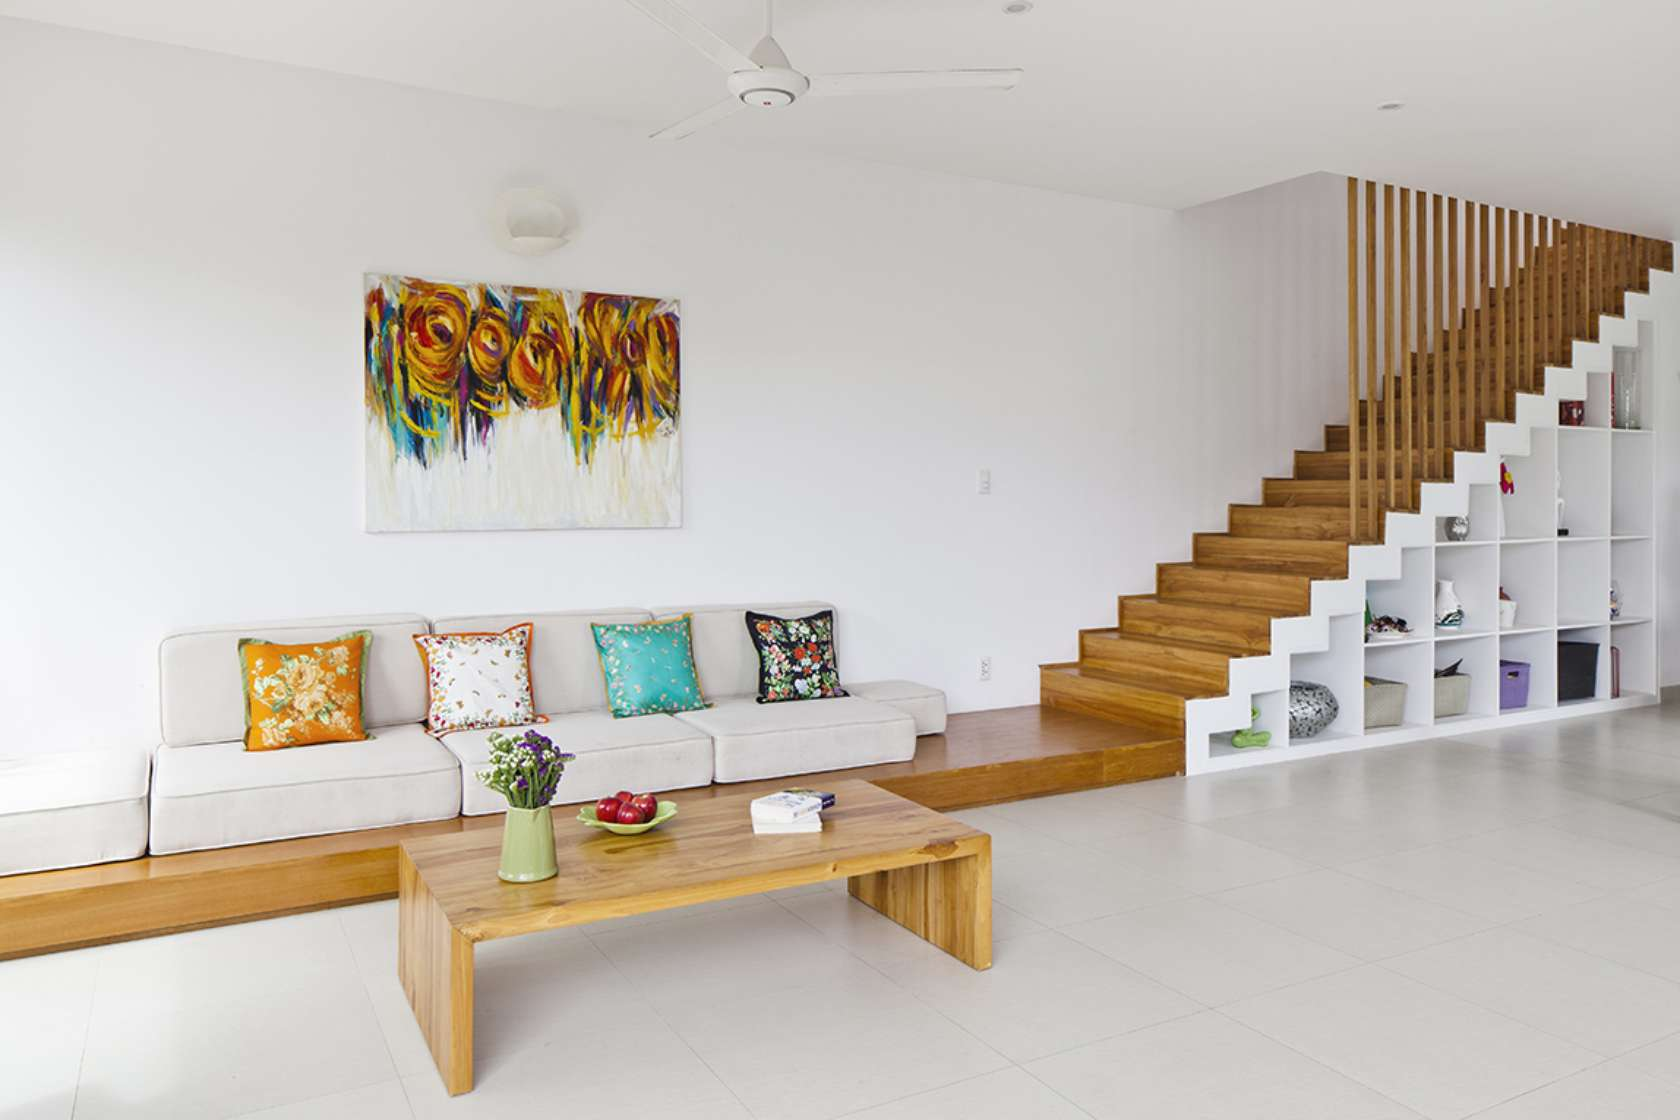 Newspaper of the West praised the words of 3-storey townhouse with beautiful garden in Saigon - Beautiful House No. (2)